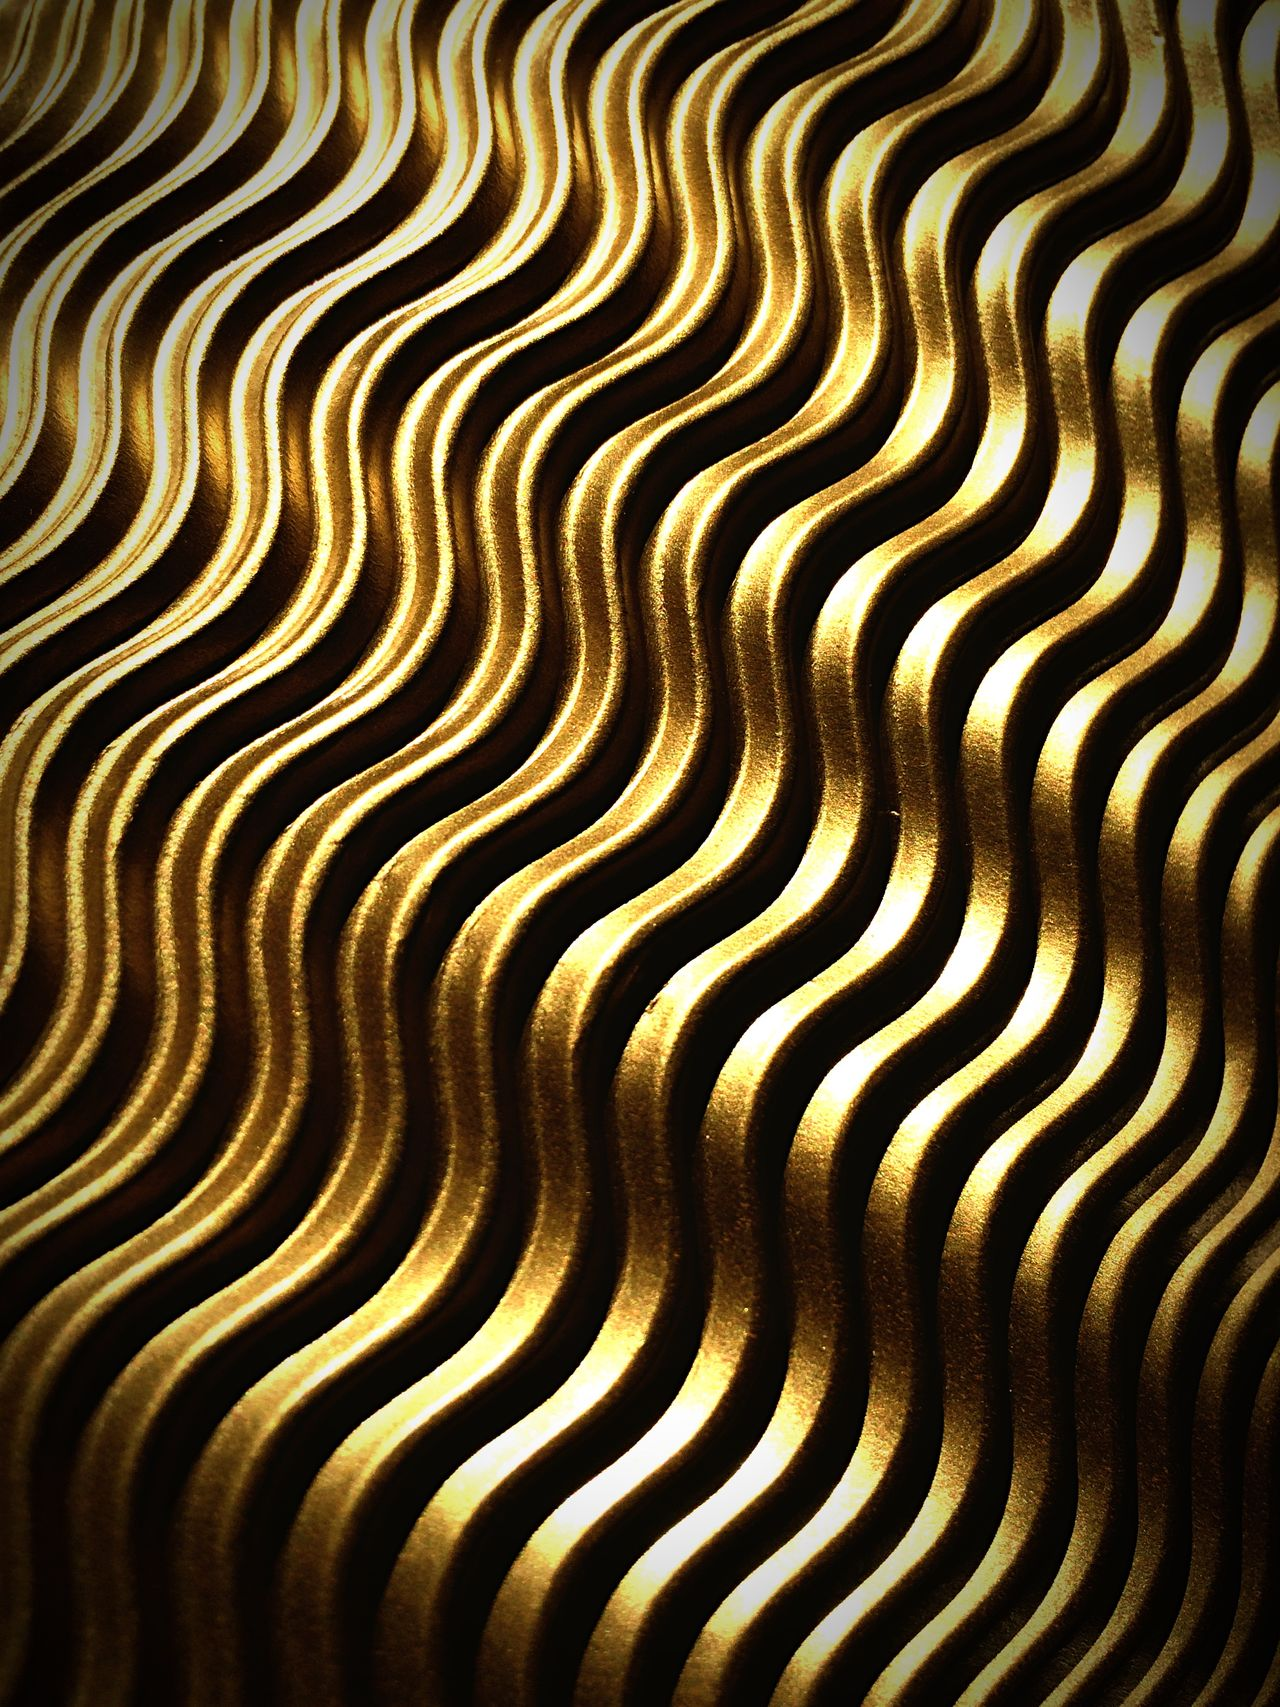 Structures Gold Throw A Curve Structure Paper Pappe Papier Light And Shadow Curve